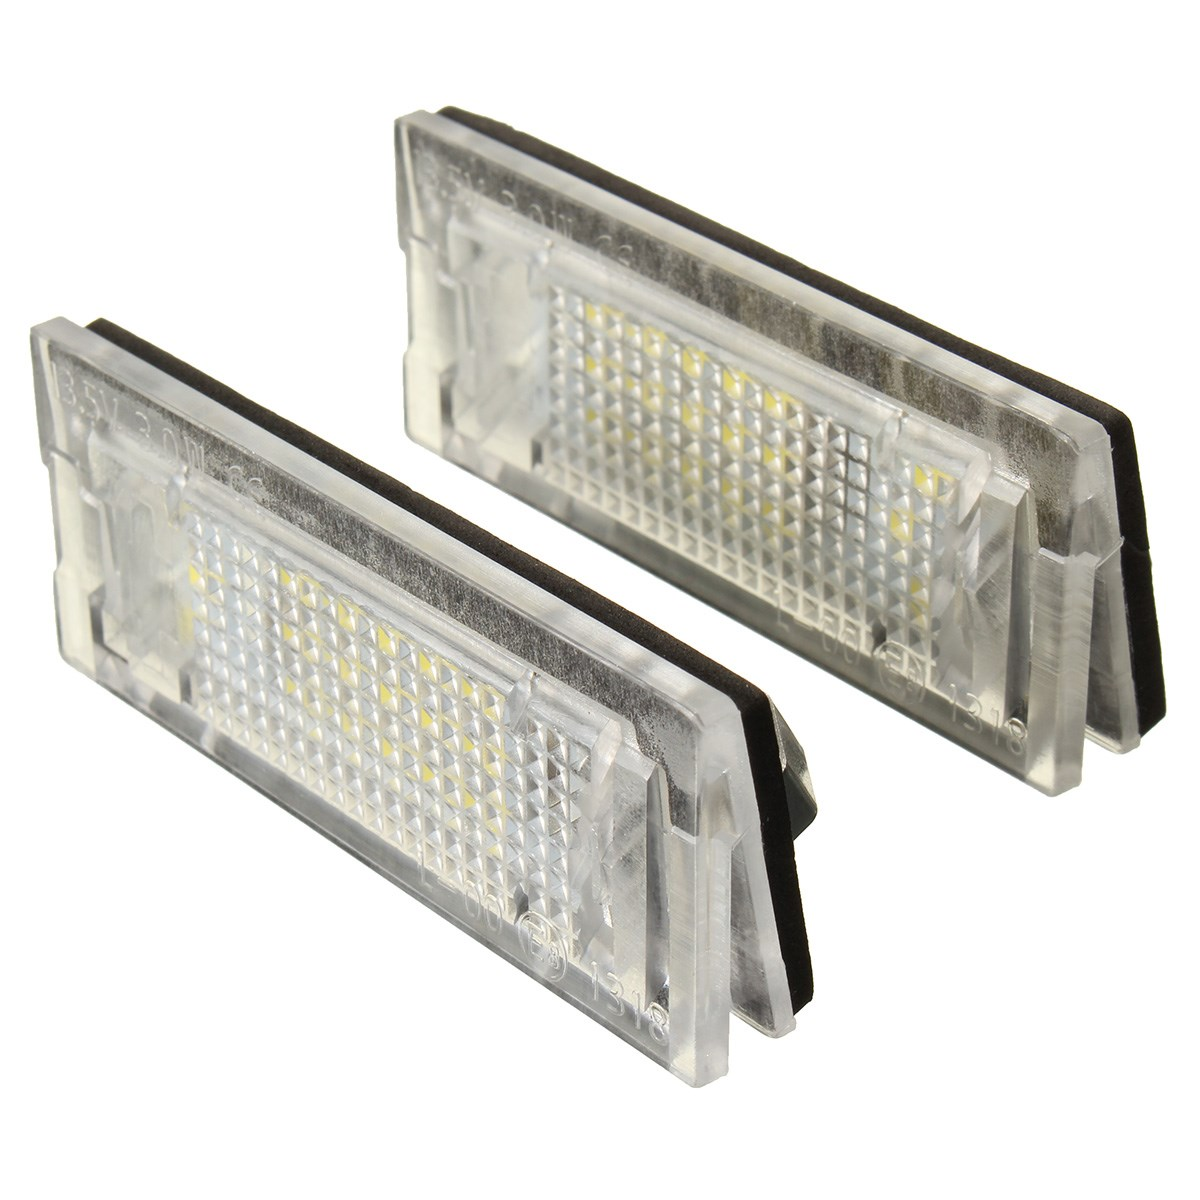 2x White LED Number License Plate Lights Lamp Fit For BMW E46 TOURING 5Door 2pcs car led license plate lights 12v white smd3528 led number plate lamp bulb kit for ford focus c max 03 07